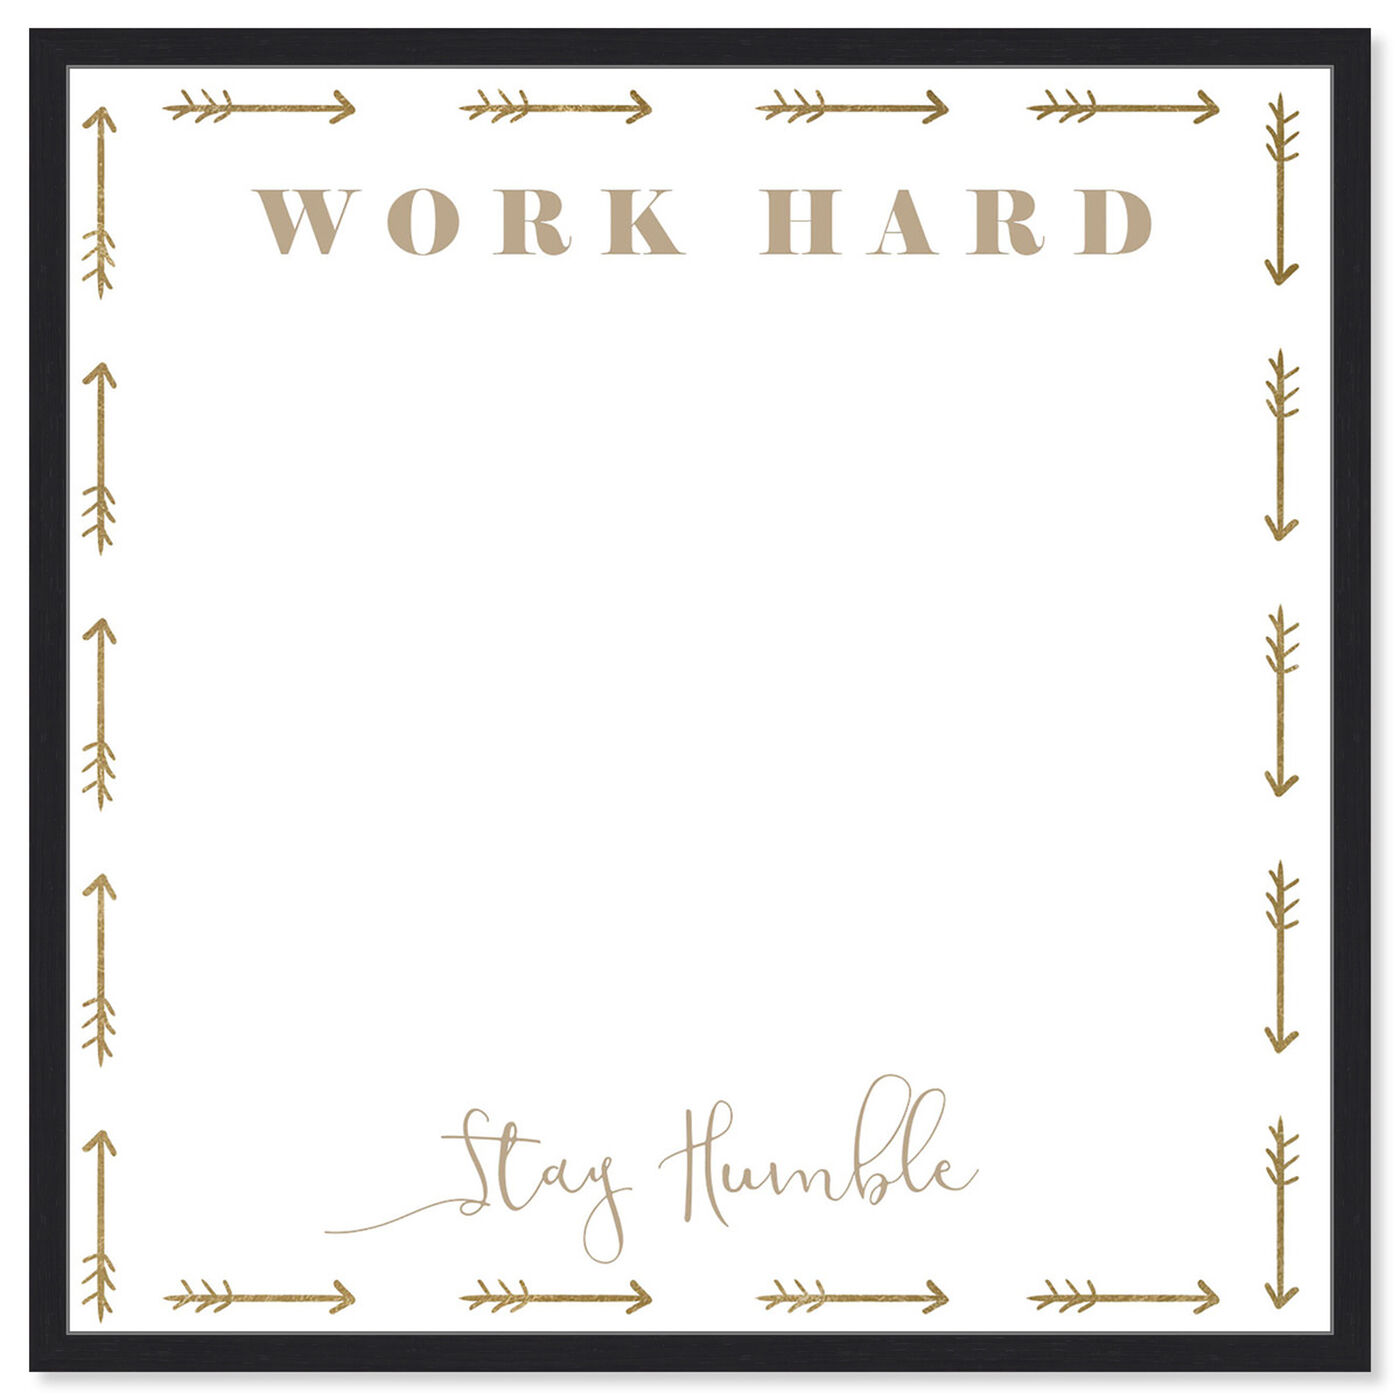 Front view of Work Hard Stay Humble featuring education and office and whiteboards art.